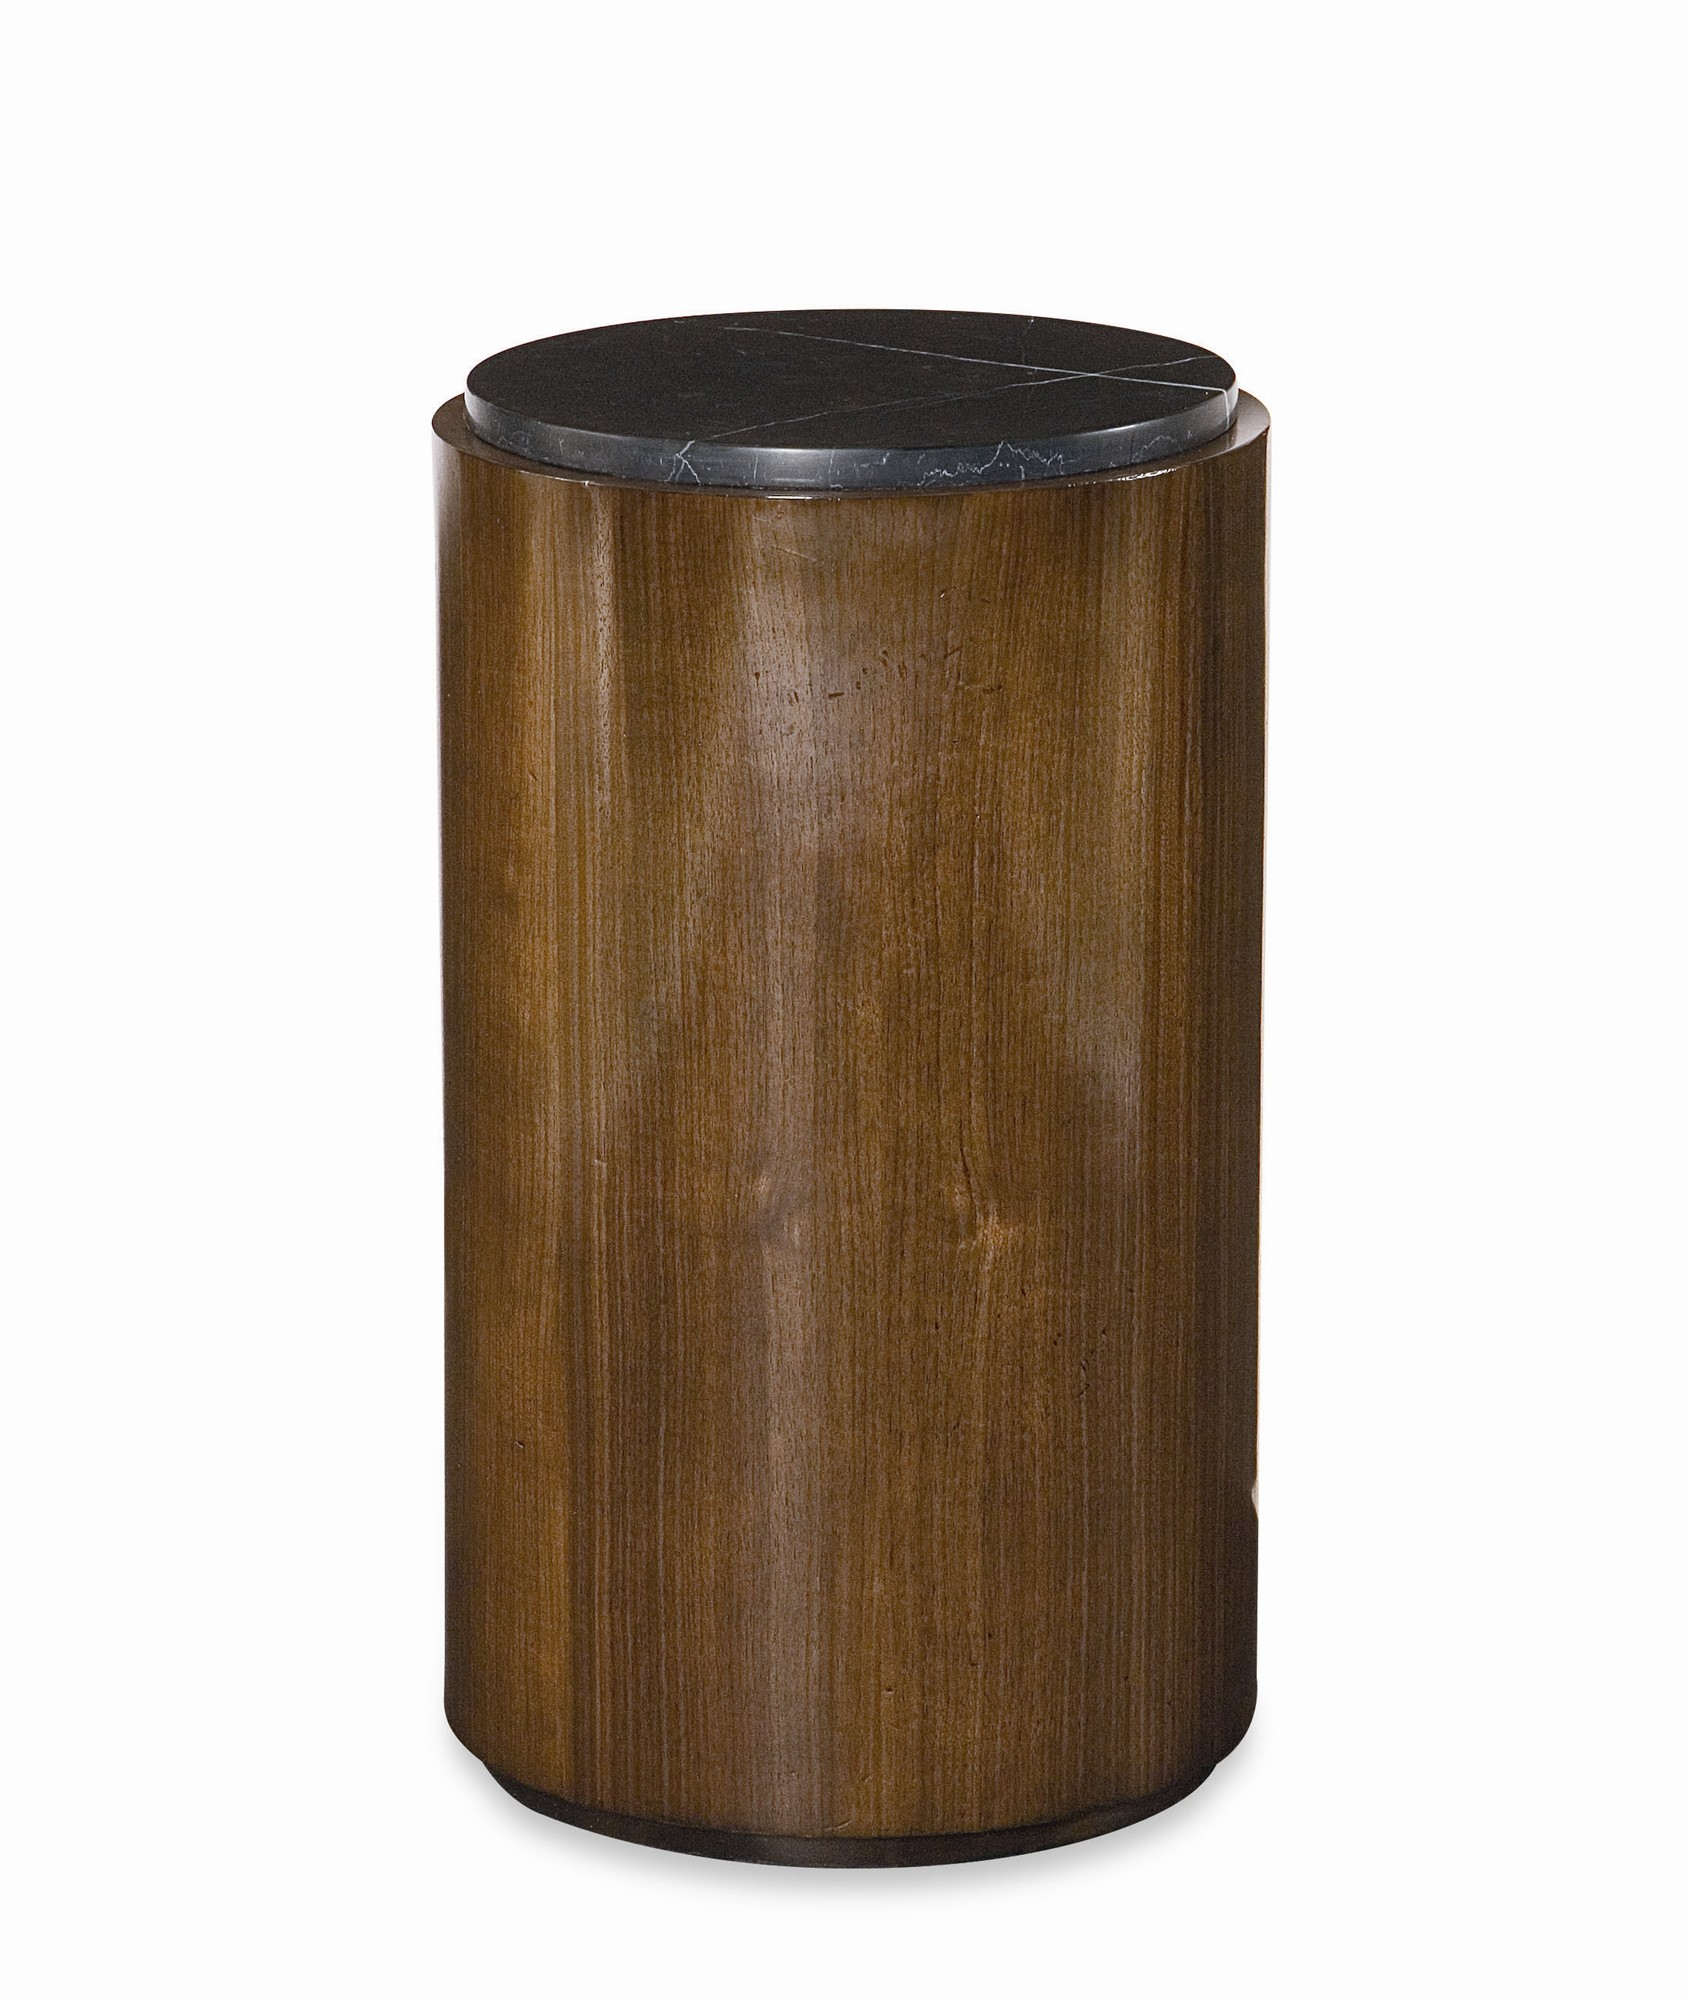 Mccobb Accent Table